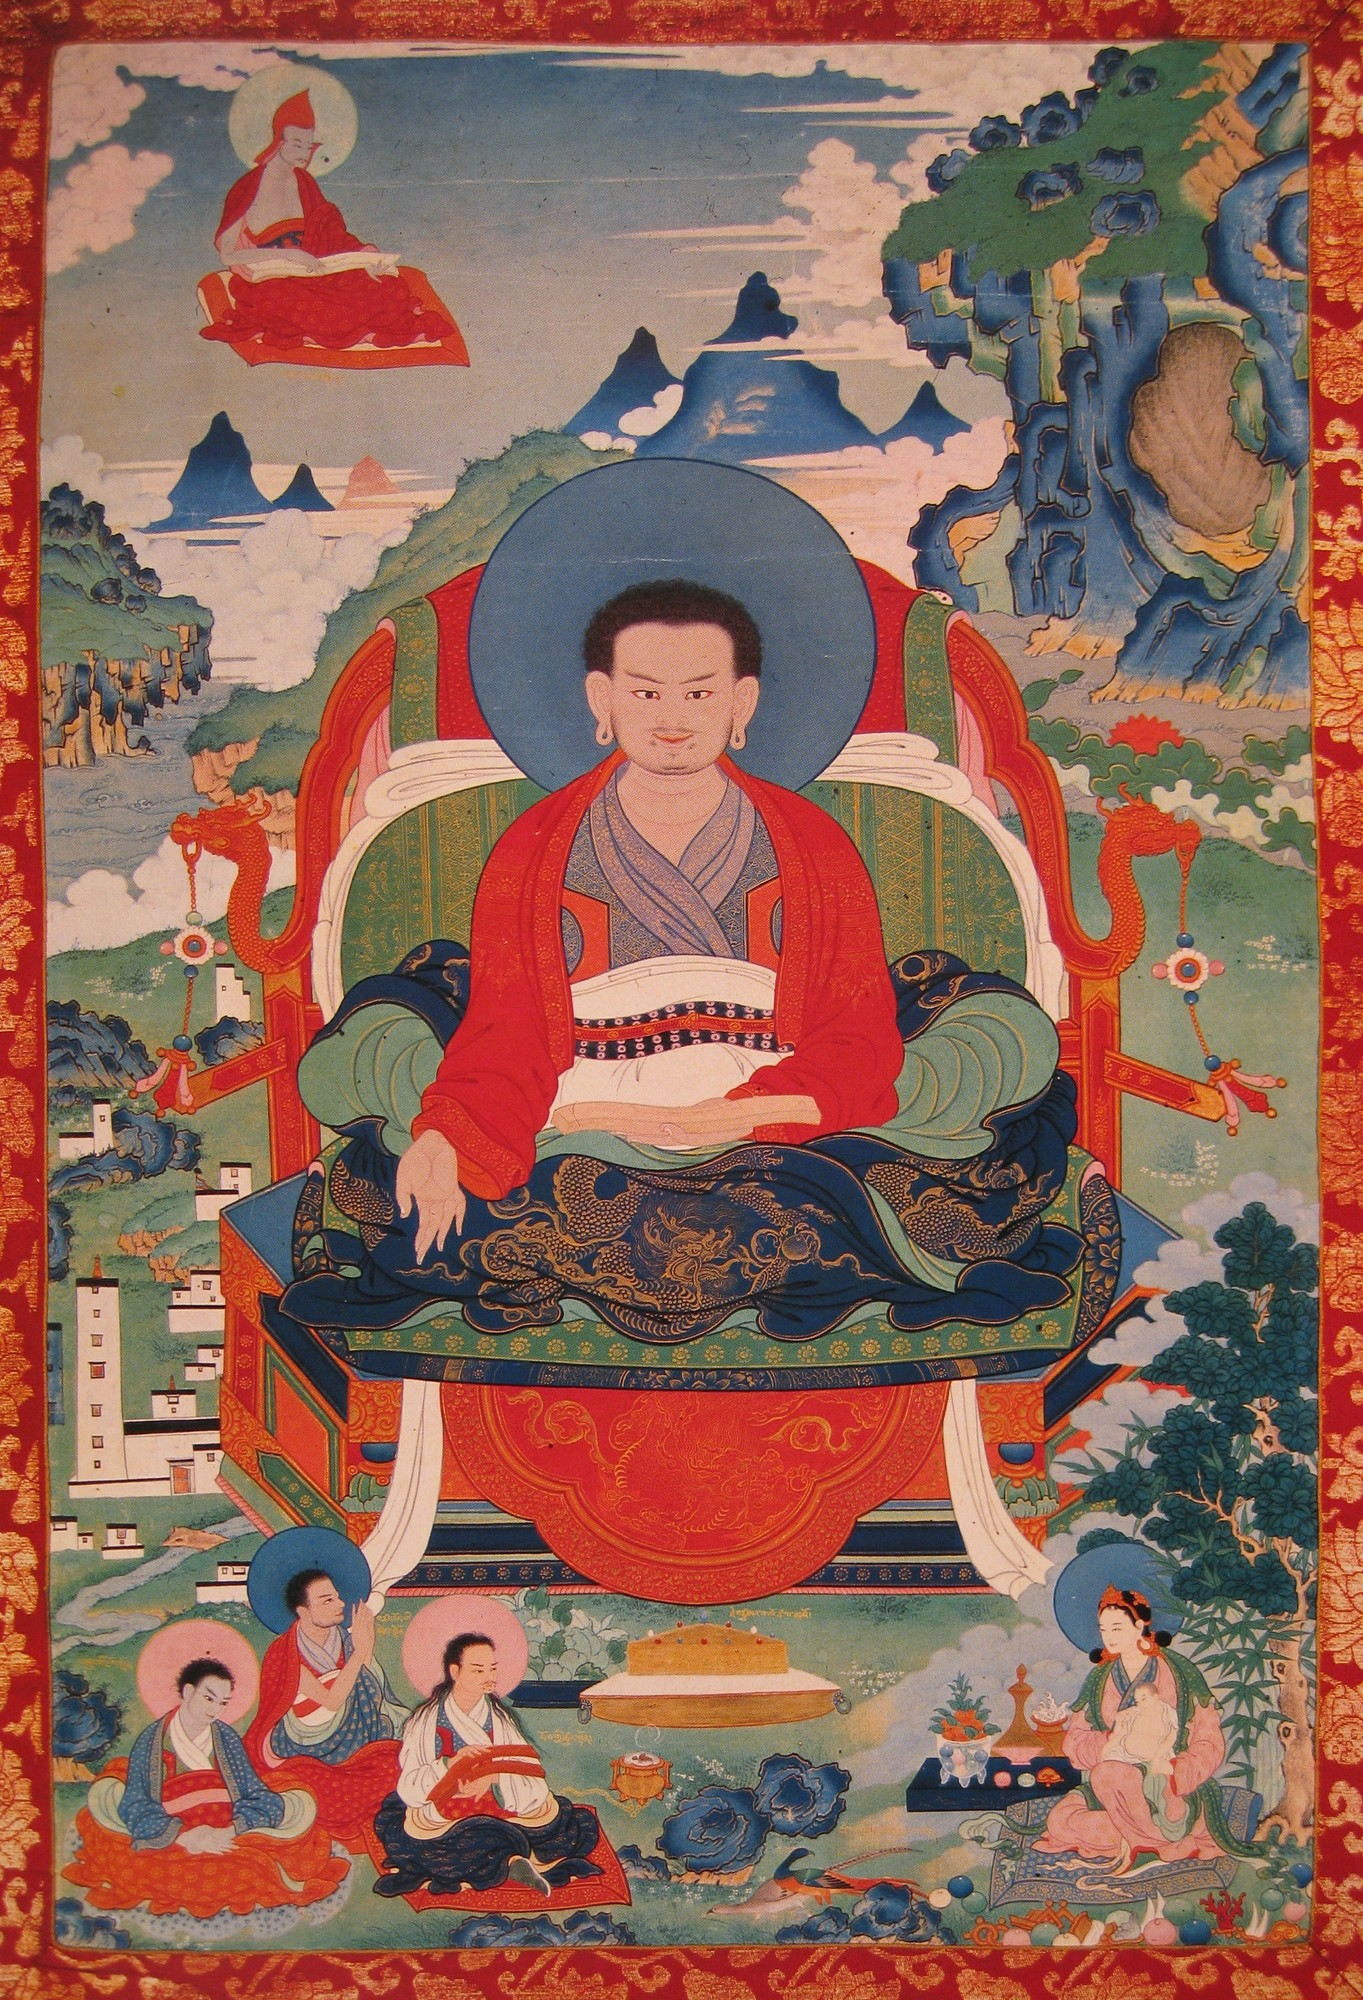 Marpa Chokyi Lodro. Image credit: himalayanart.org. Click on image to enlarge.